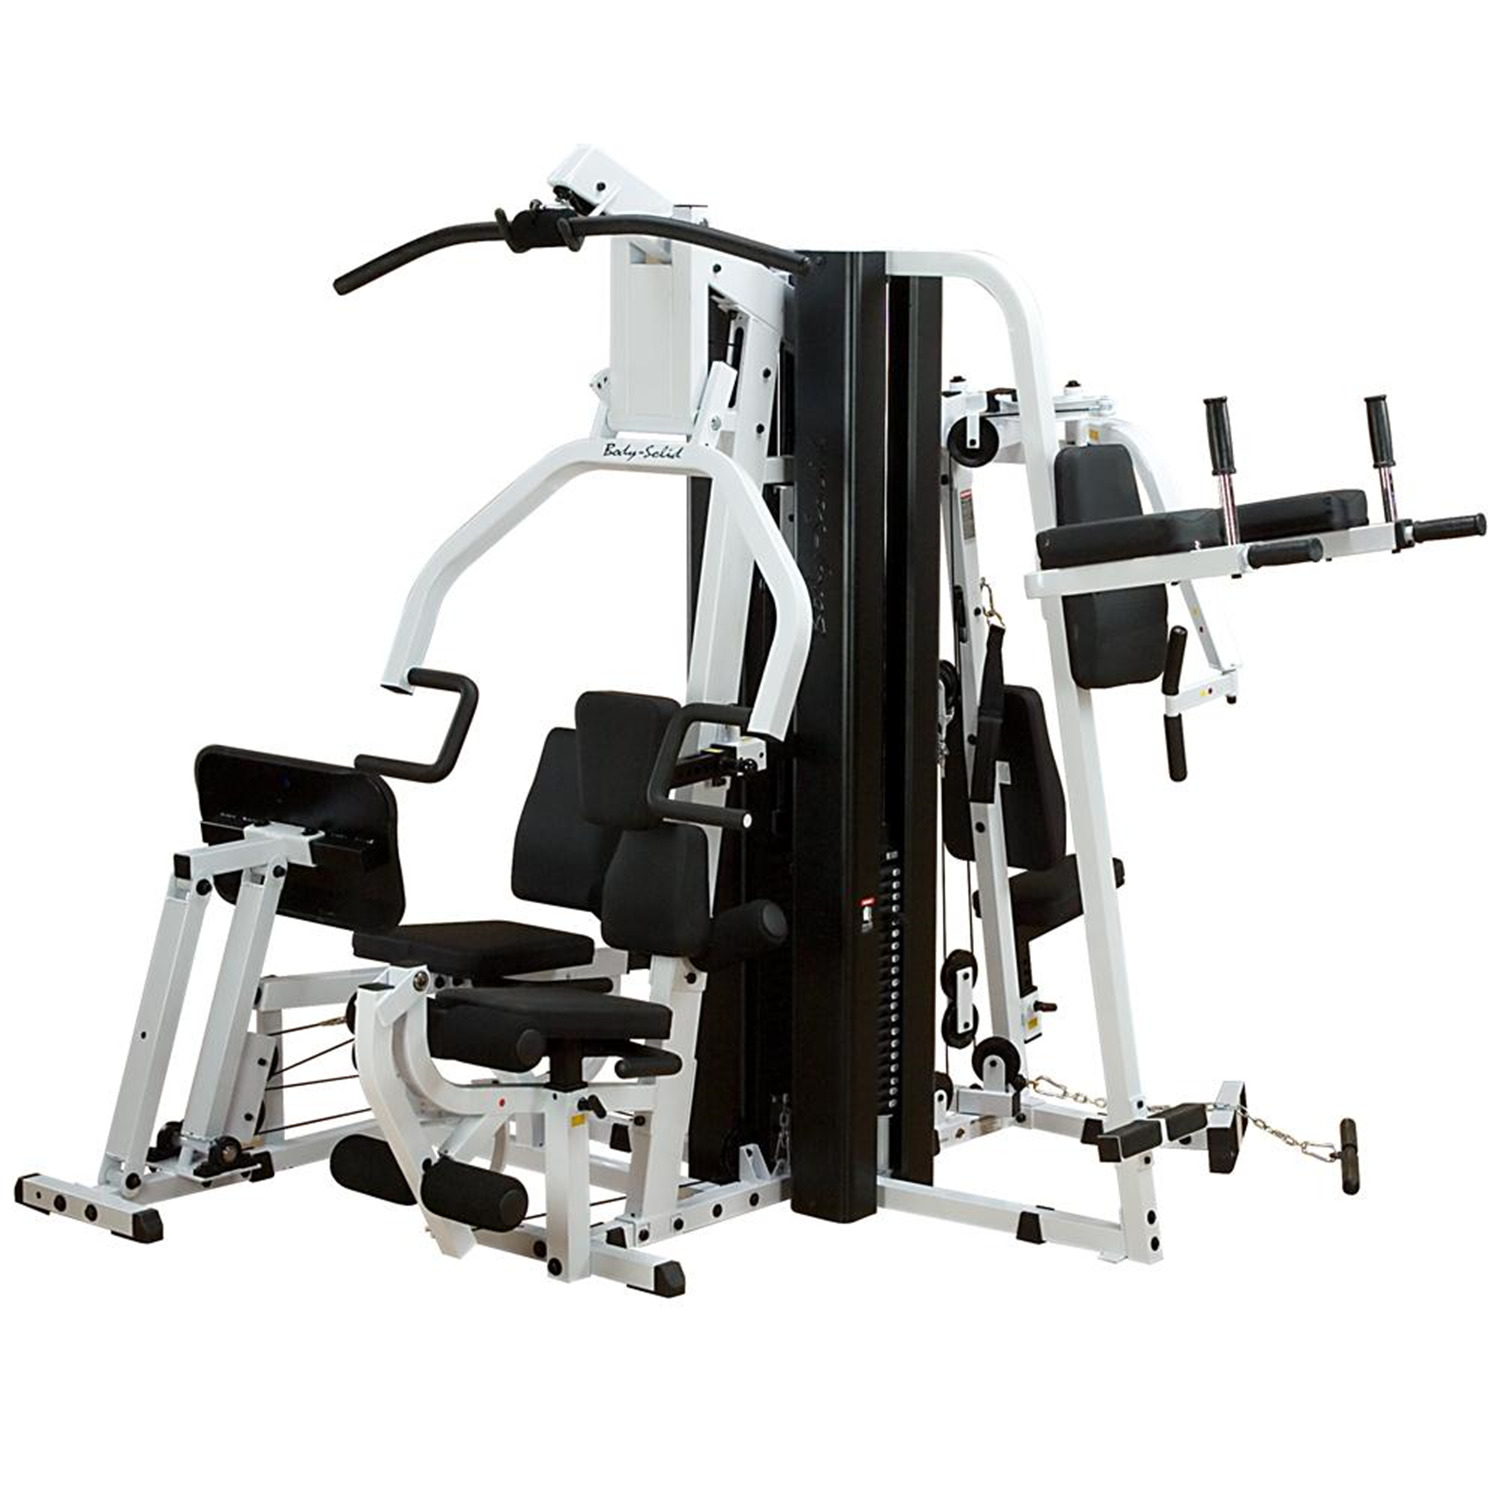 Body solid double stack home gym by oj commerce